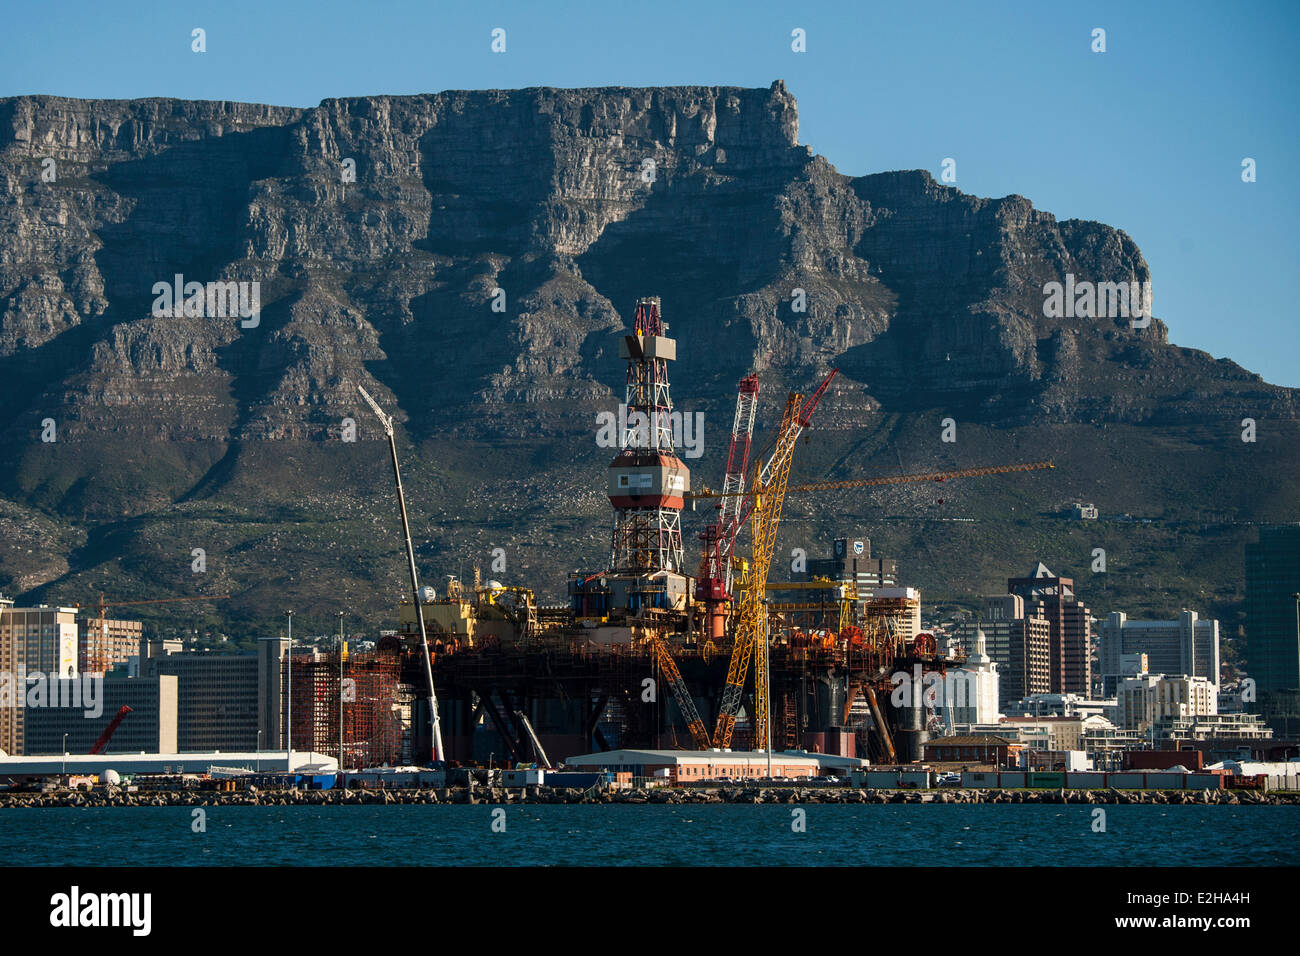 Docks with Table Mountain, Cape Town, Western Cape, South Africa - Stock Image